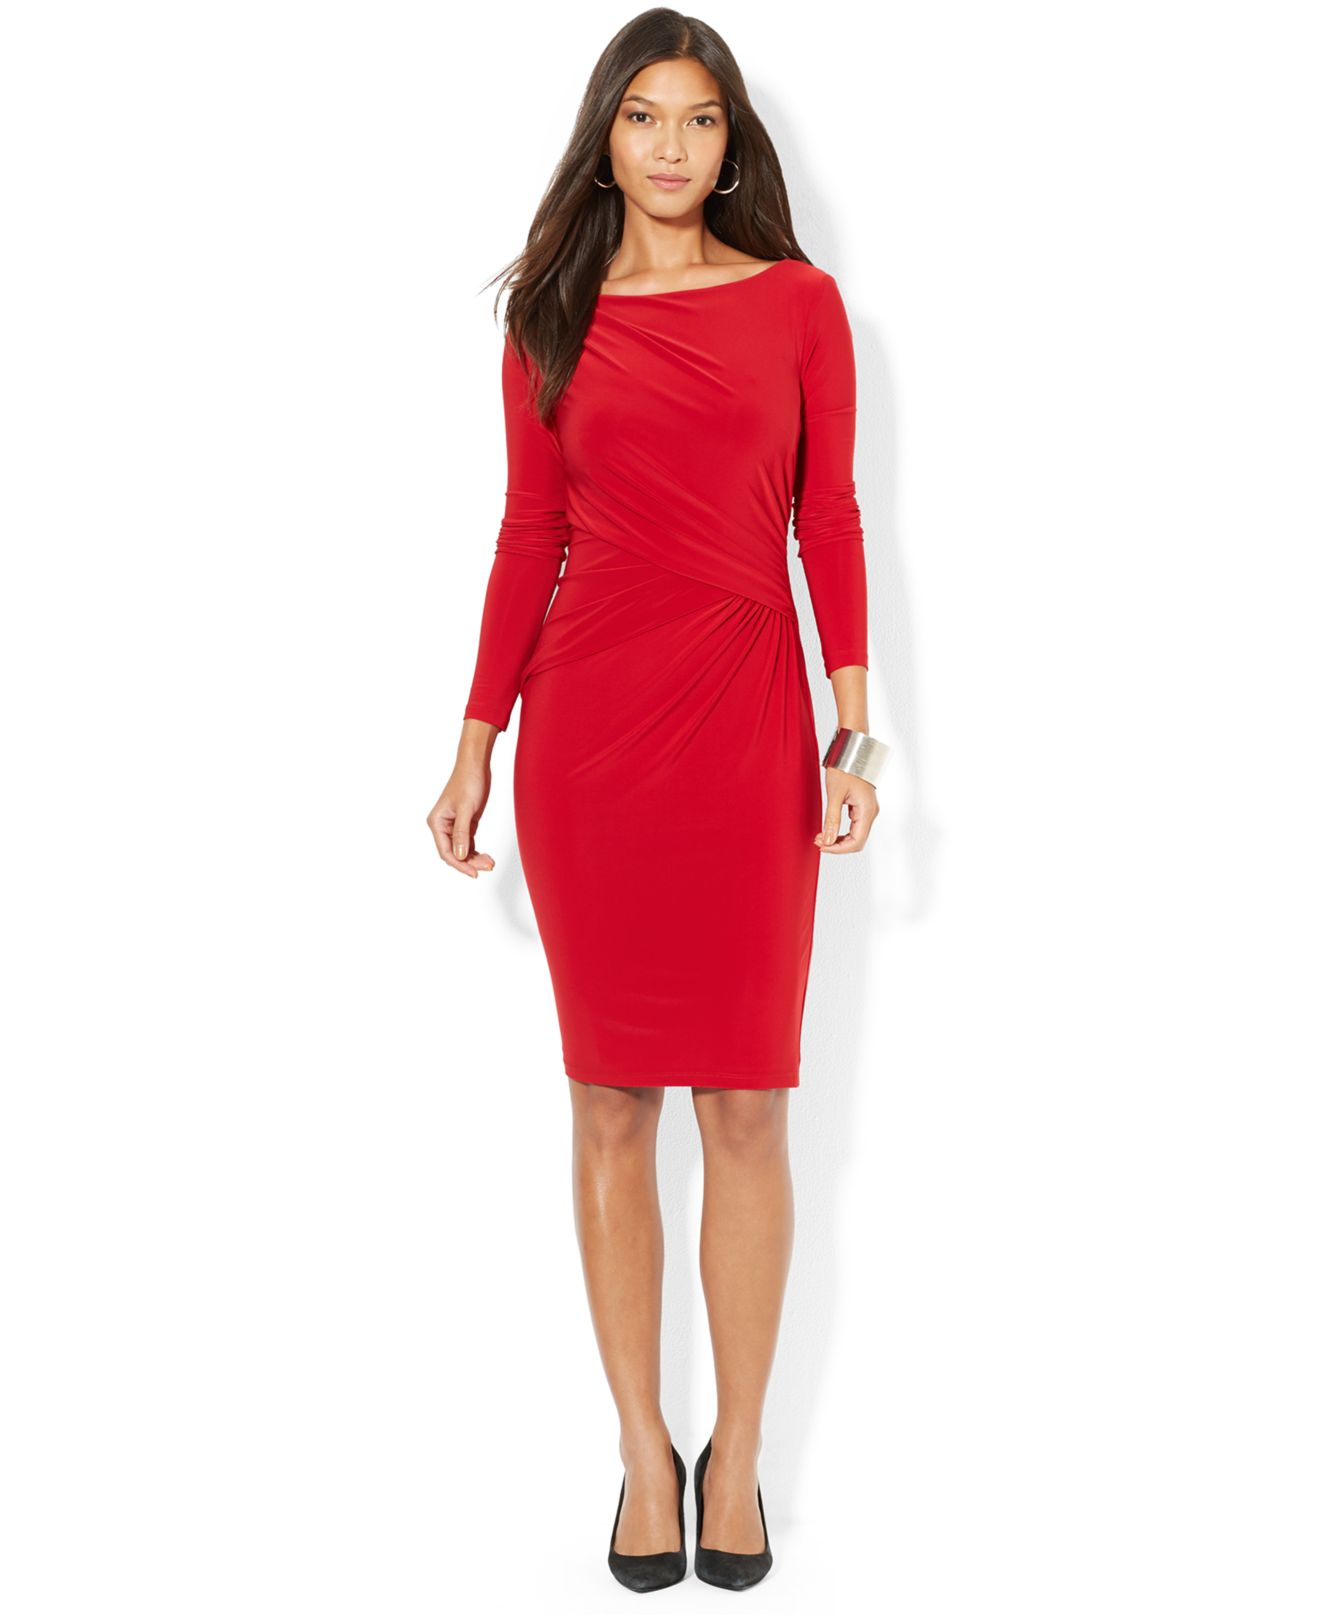 Ruched Jersey Dresses